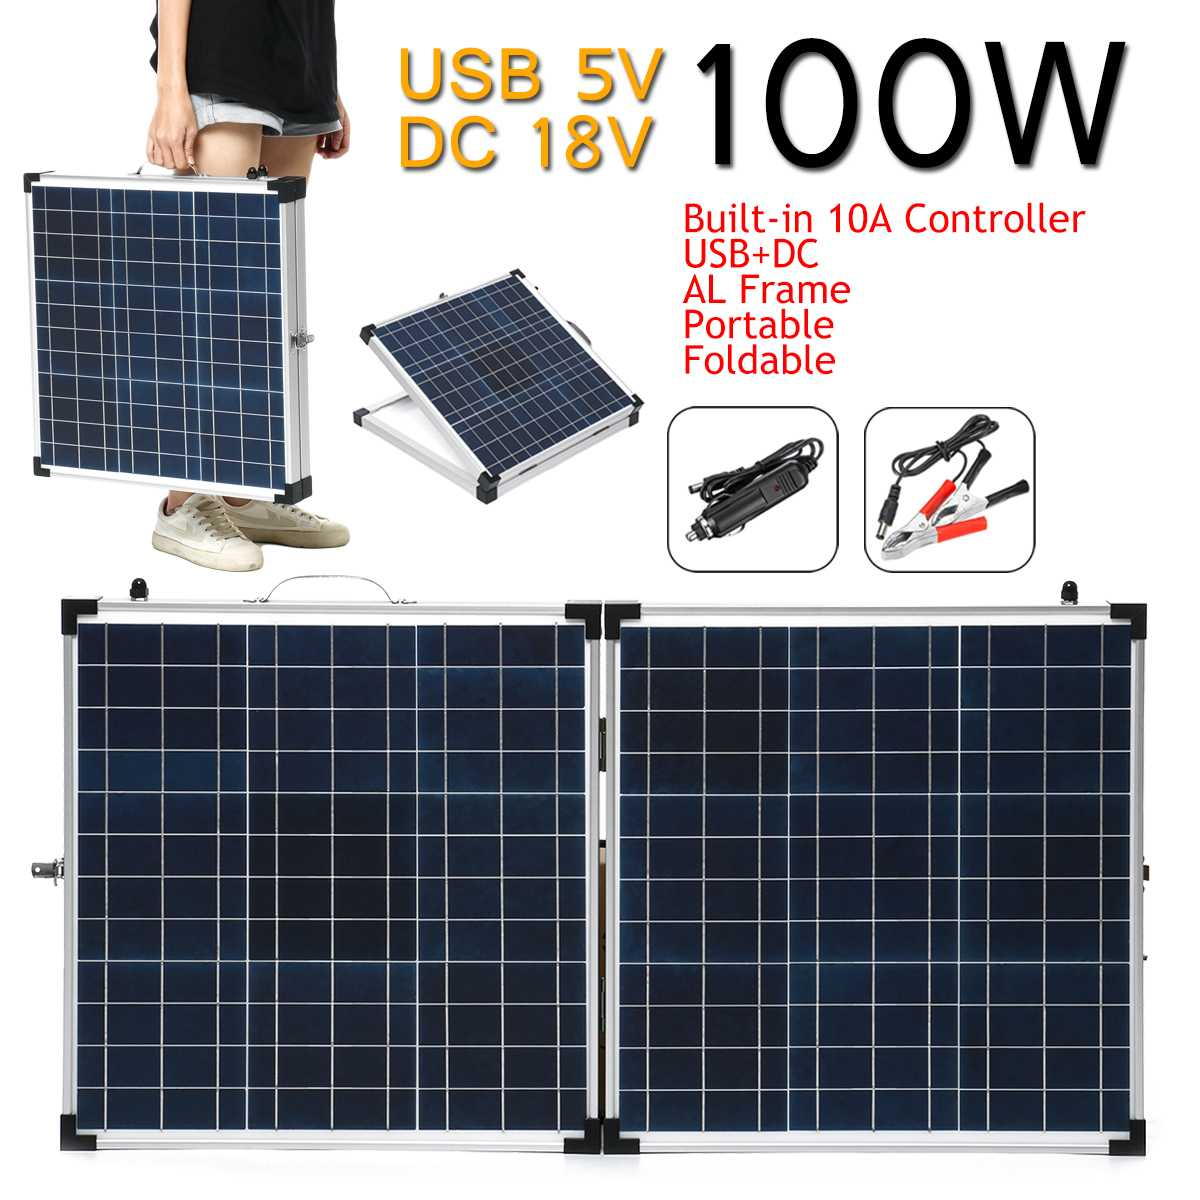 LEROY 100W 18V Folding Portable Solar Panel Solar cells battery charger with Car Charger for Outdoor Camping Waterproof|Solar Cells| |  -